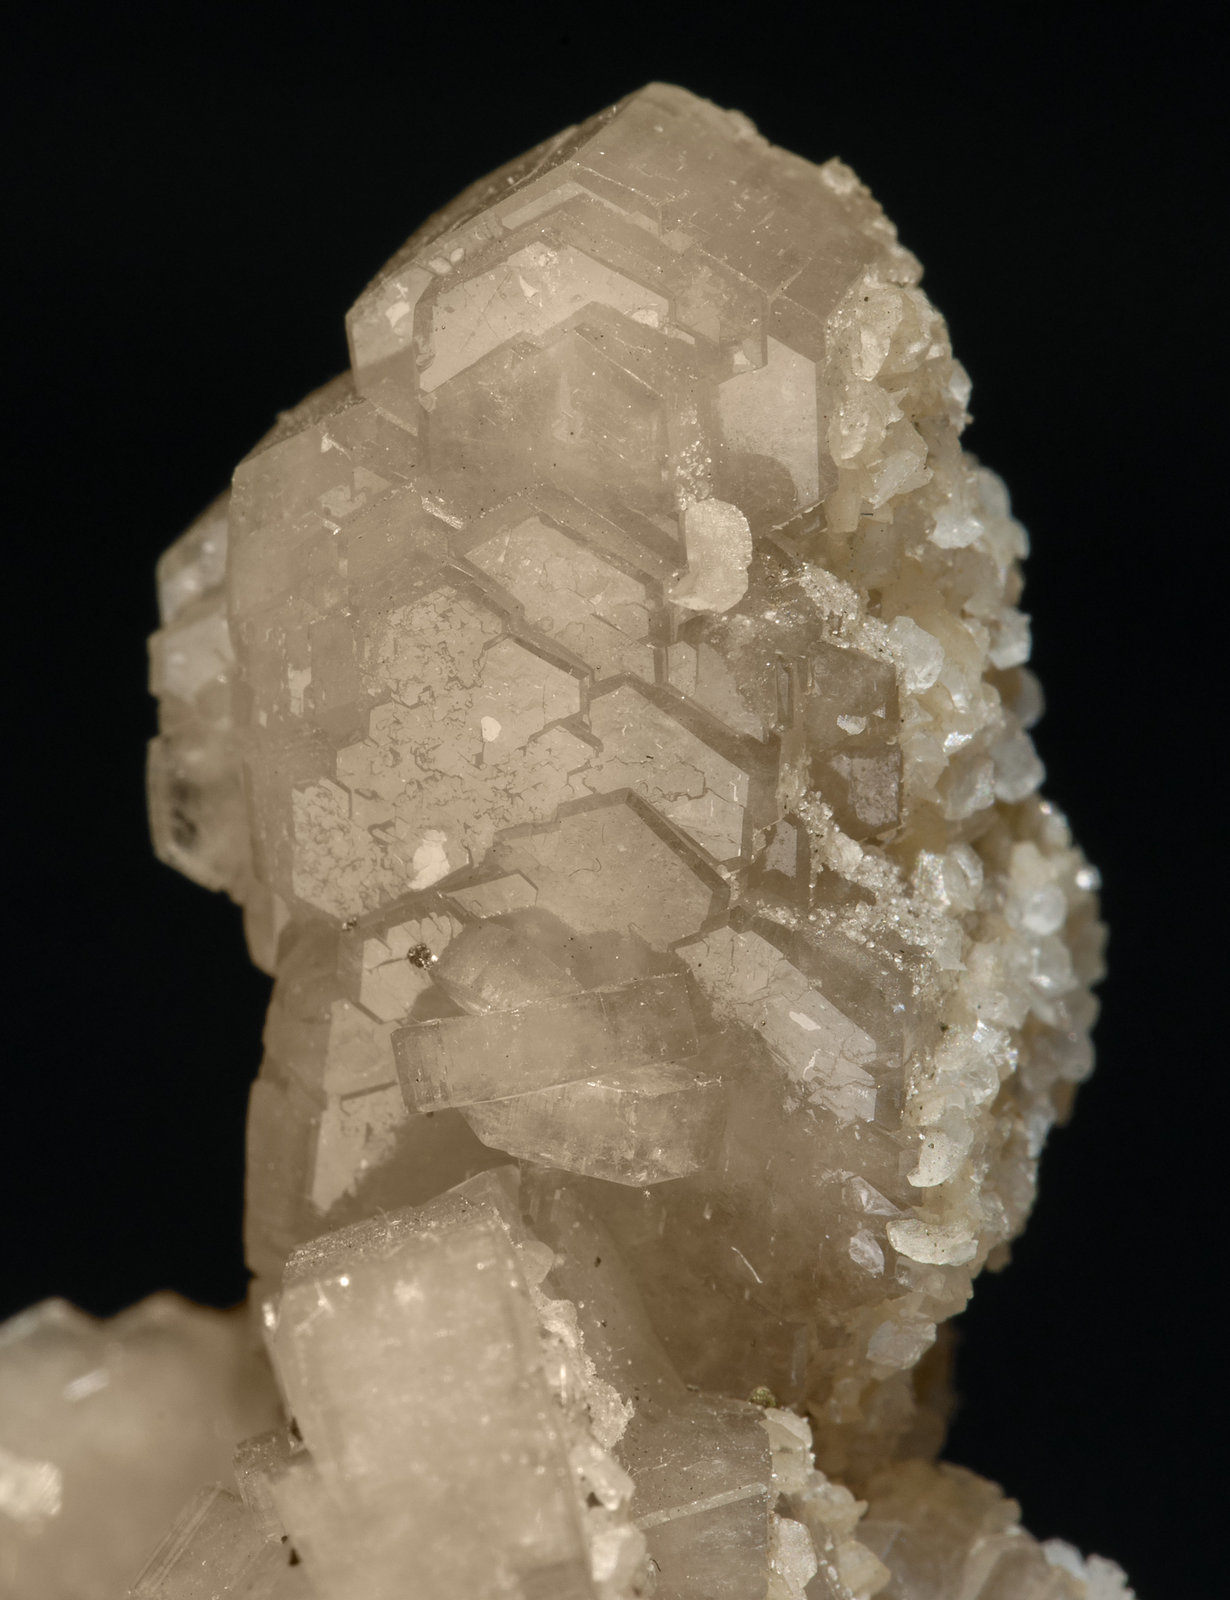 specimens/s_imagesZ4/Fluorapatite-ND16Z4d.jpg